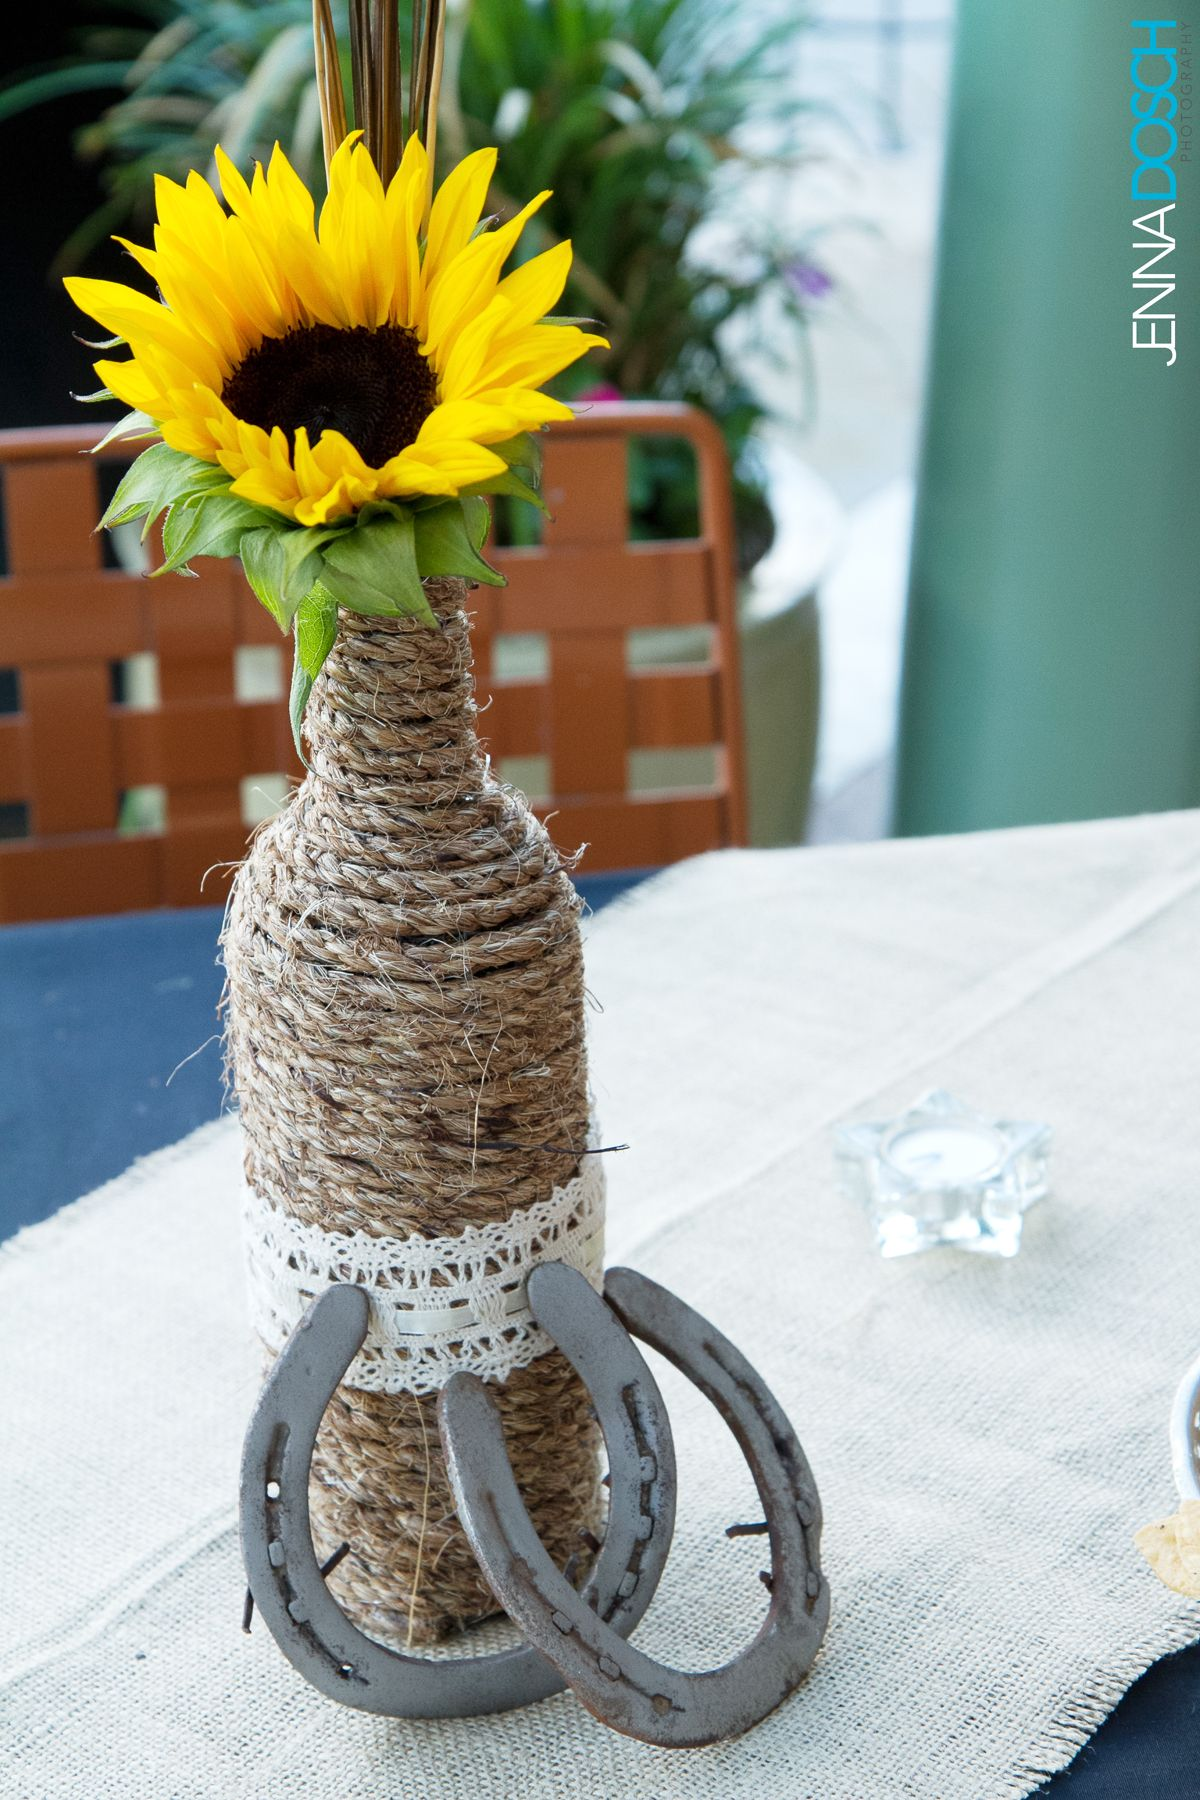 western wedding decoration 25 creative floral designs with sunflowers summer 1255